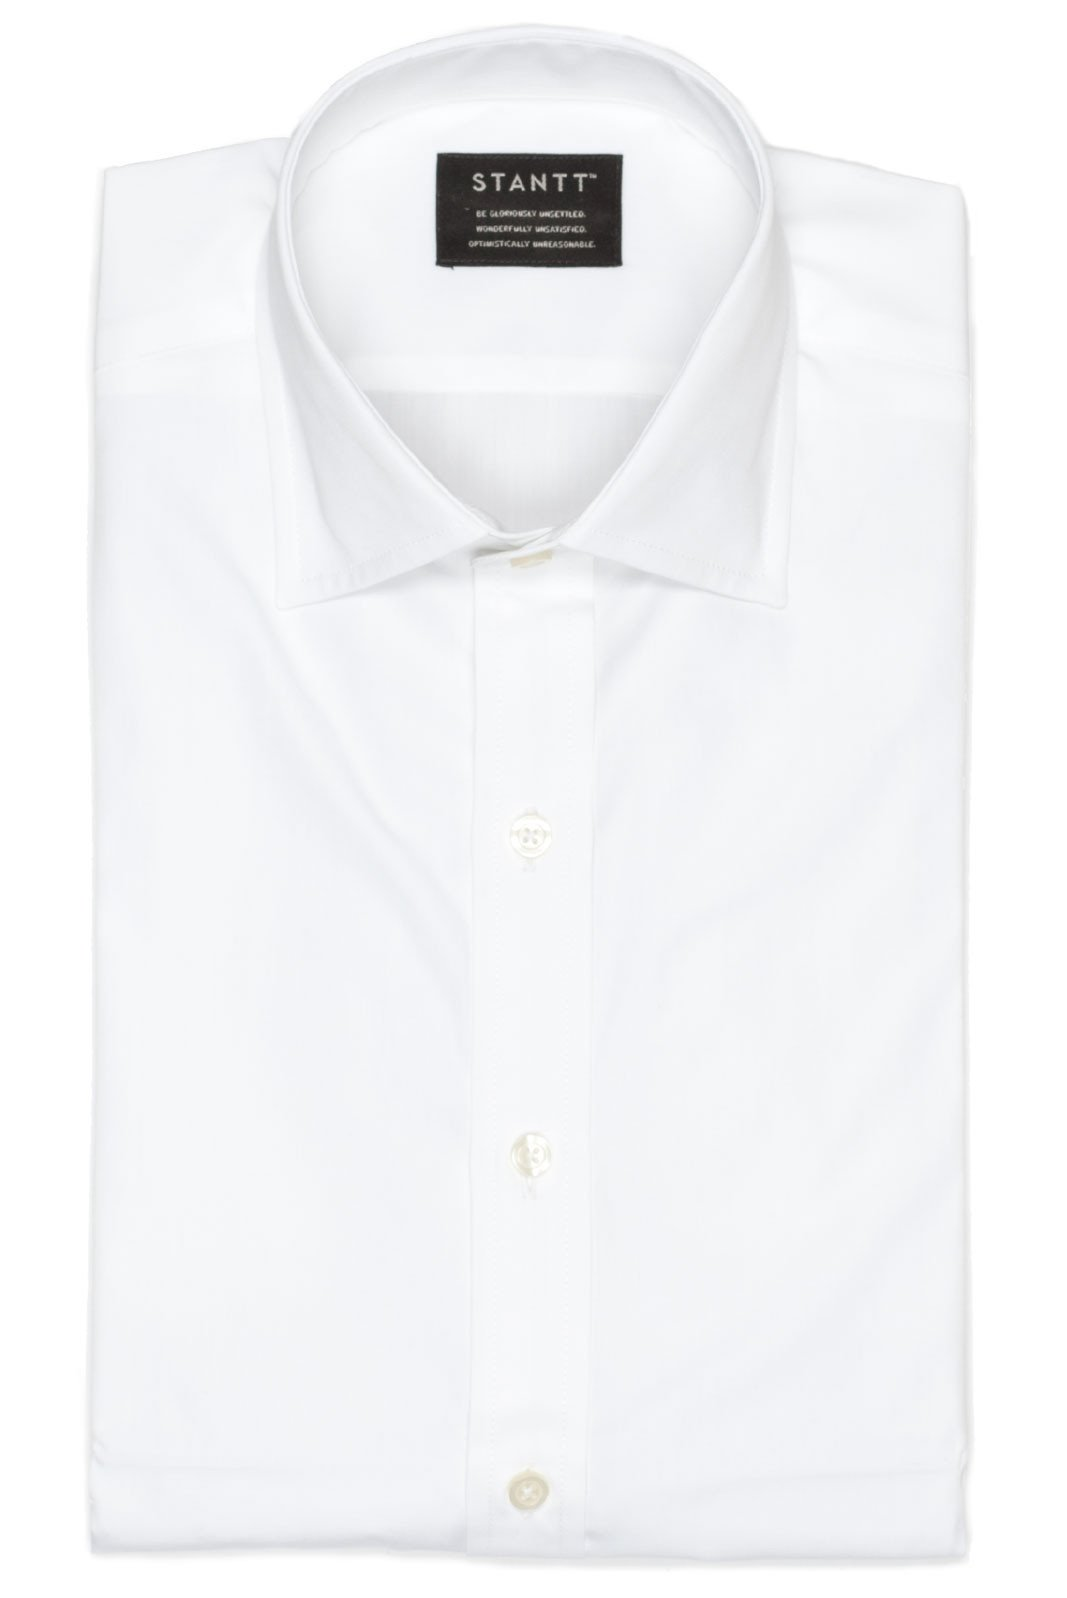 Fine White Poplin: Modified Spread Collar, French Cuff